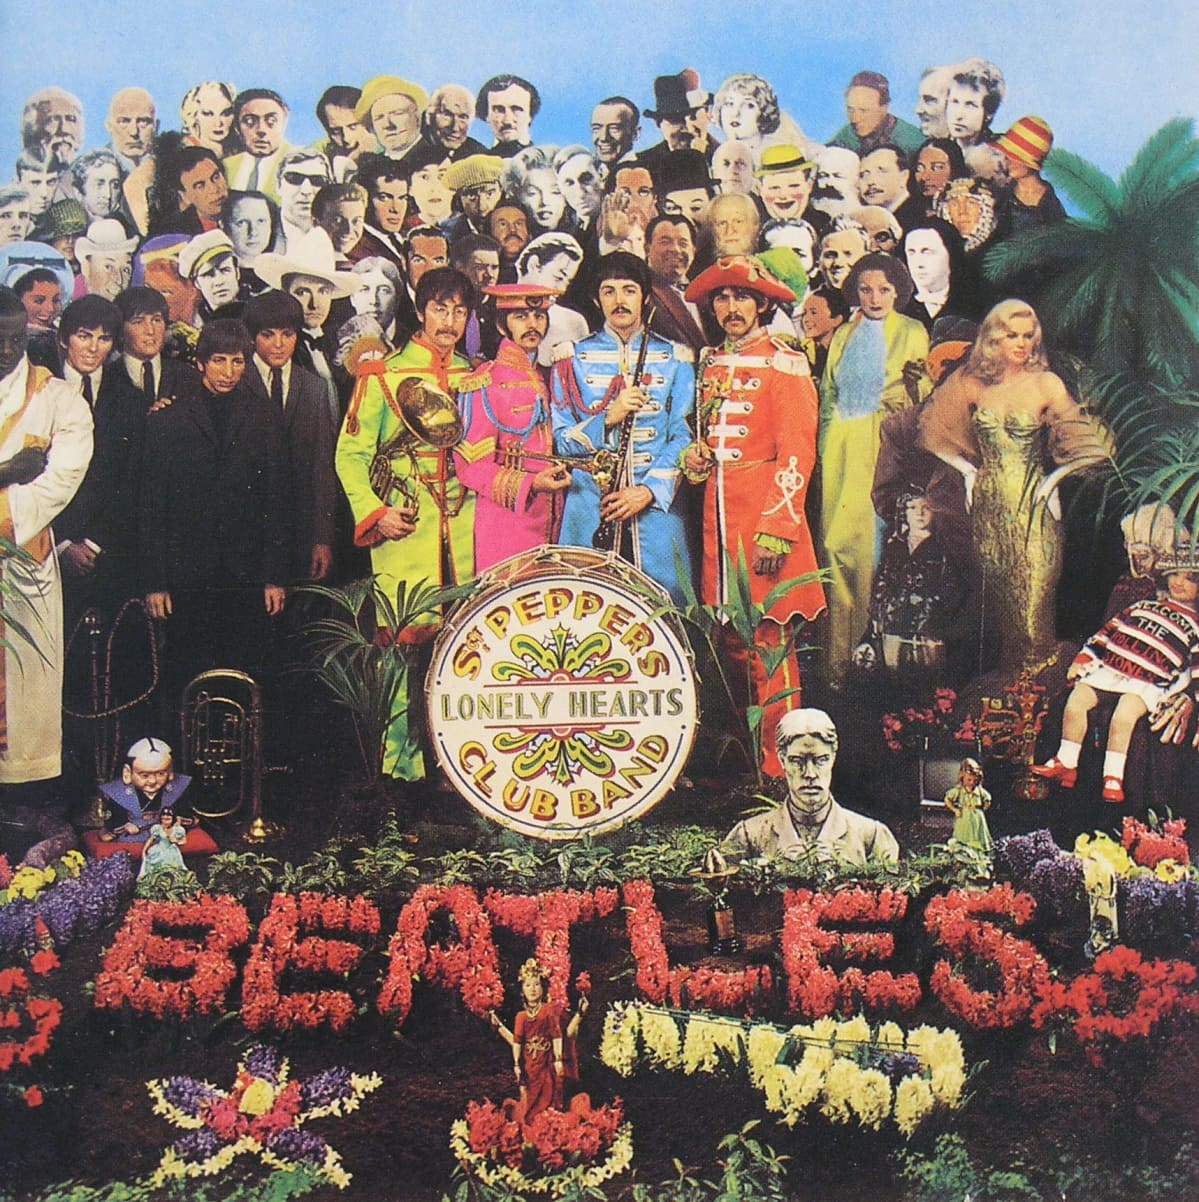 Beatlesin Sgt. Pepper's Lonely Hearts Club Band -levyn kansikuva.